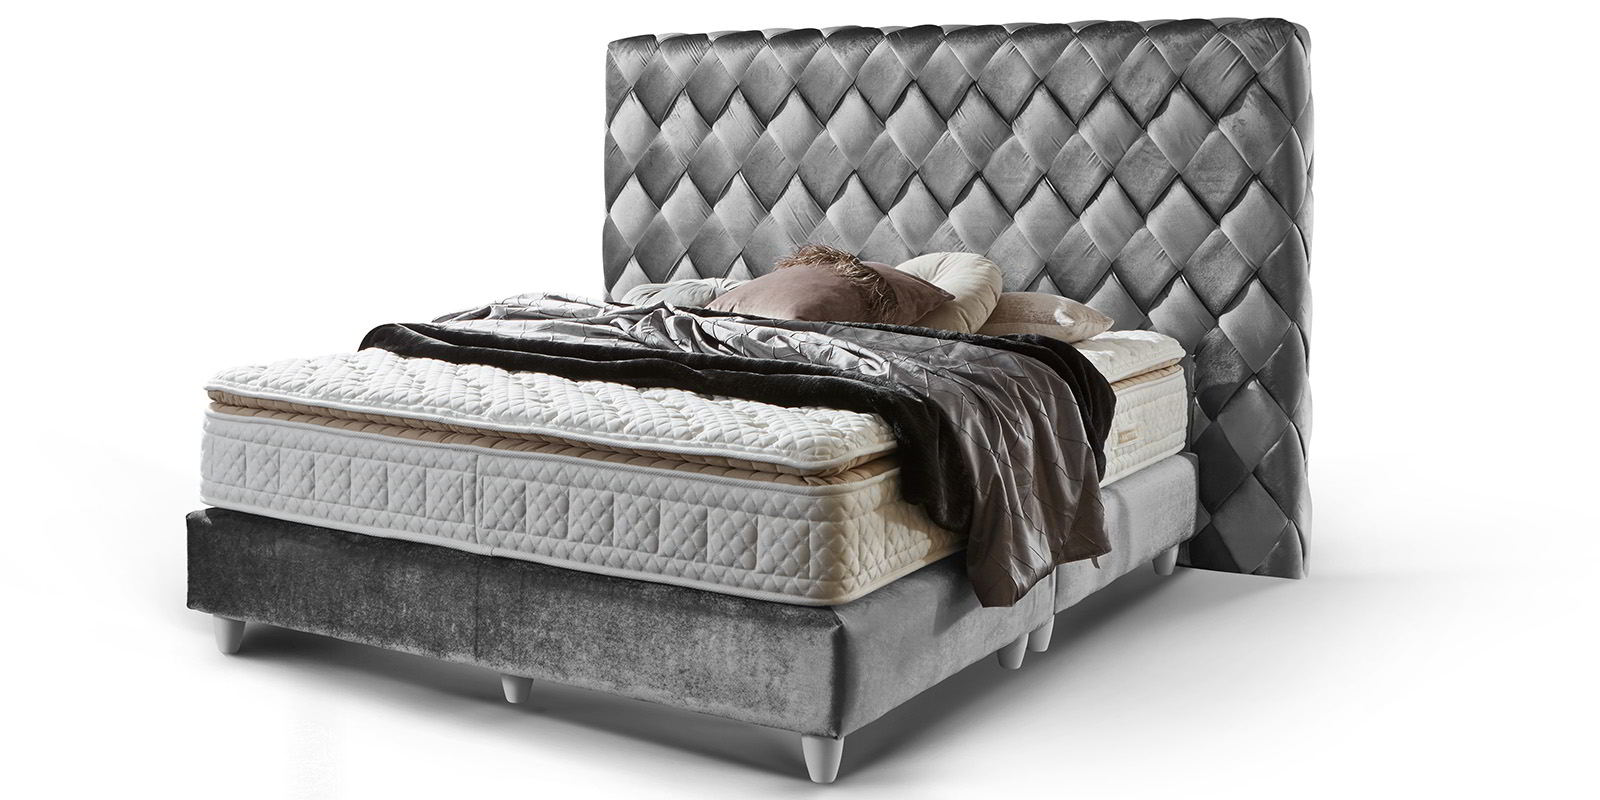 Full Size of Chesterfield Bett Samt Grau Schwarz 200x200 Luxus Klassiker Velvet Buche Günstig Betten Kaufen Ikea 160x200 Clinique Even Better Make Up Komplett Küche Wohnzimmer Chesterfield Bett Samt Grau